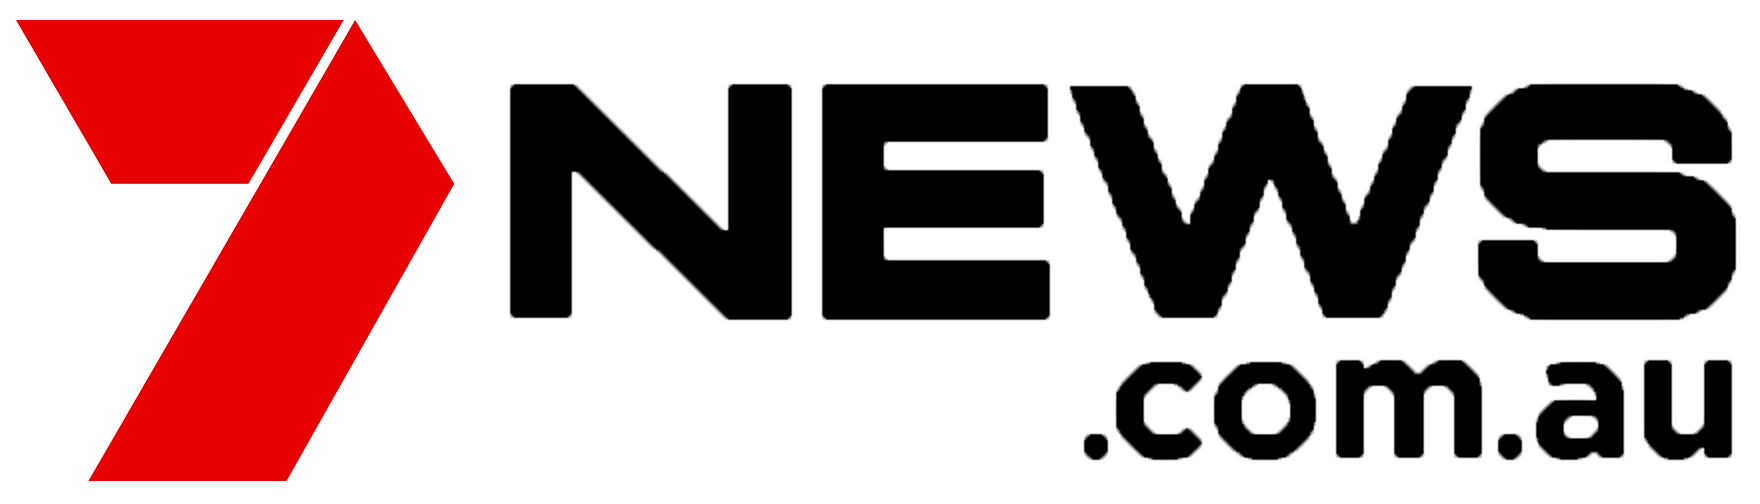 Seven News (website)